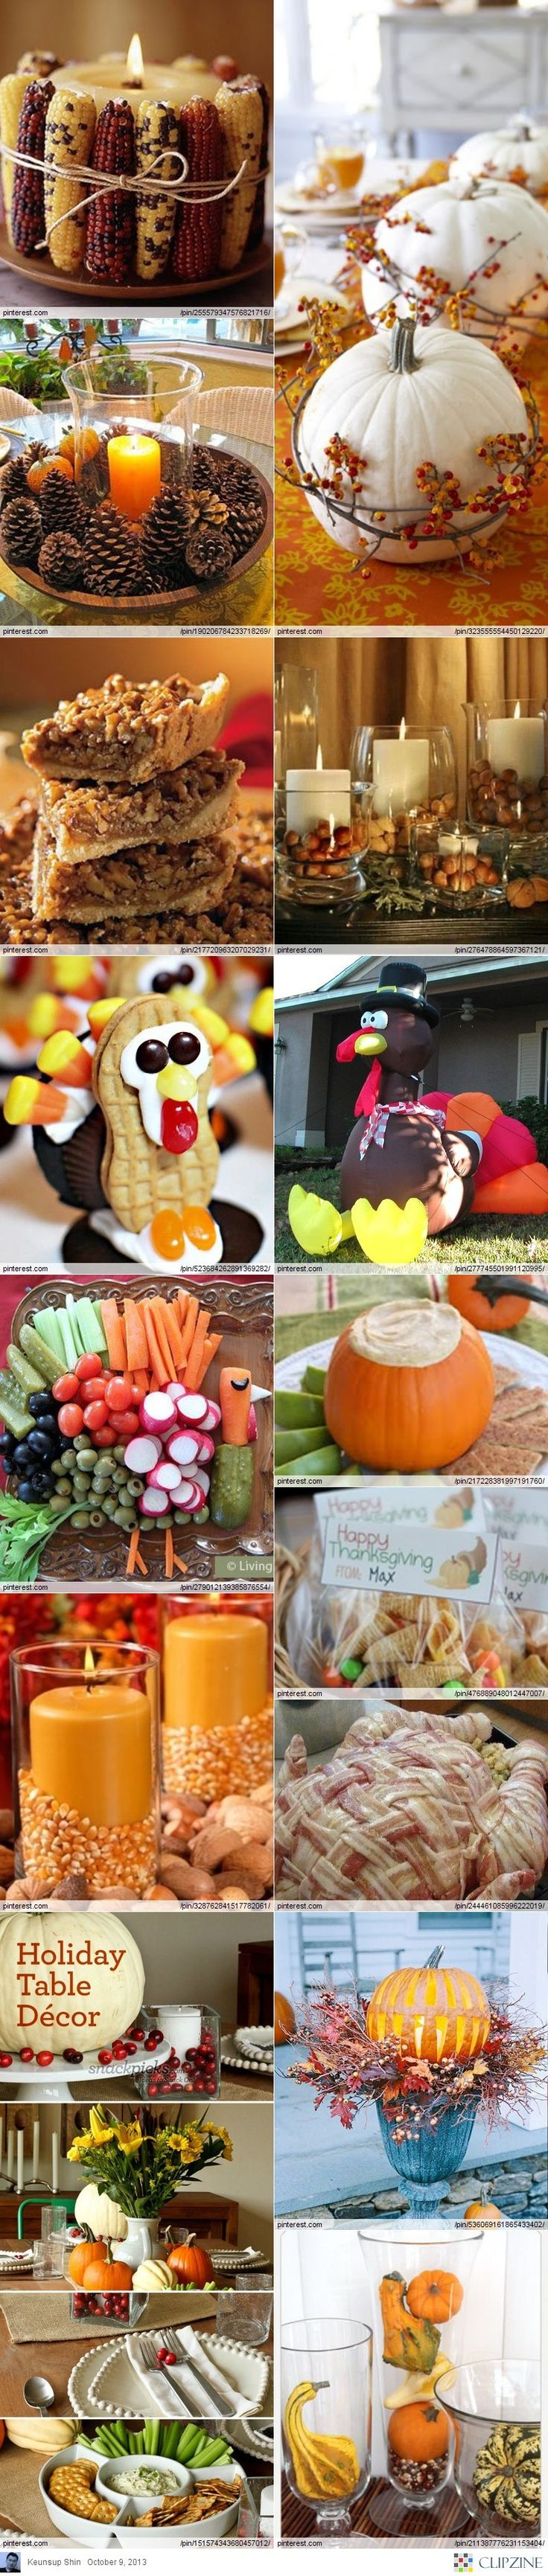 1000 images about thanksgiving on pinterest for Thanksgiving home decorations pinterest